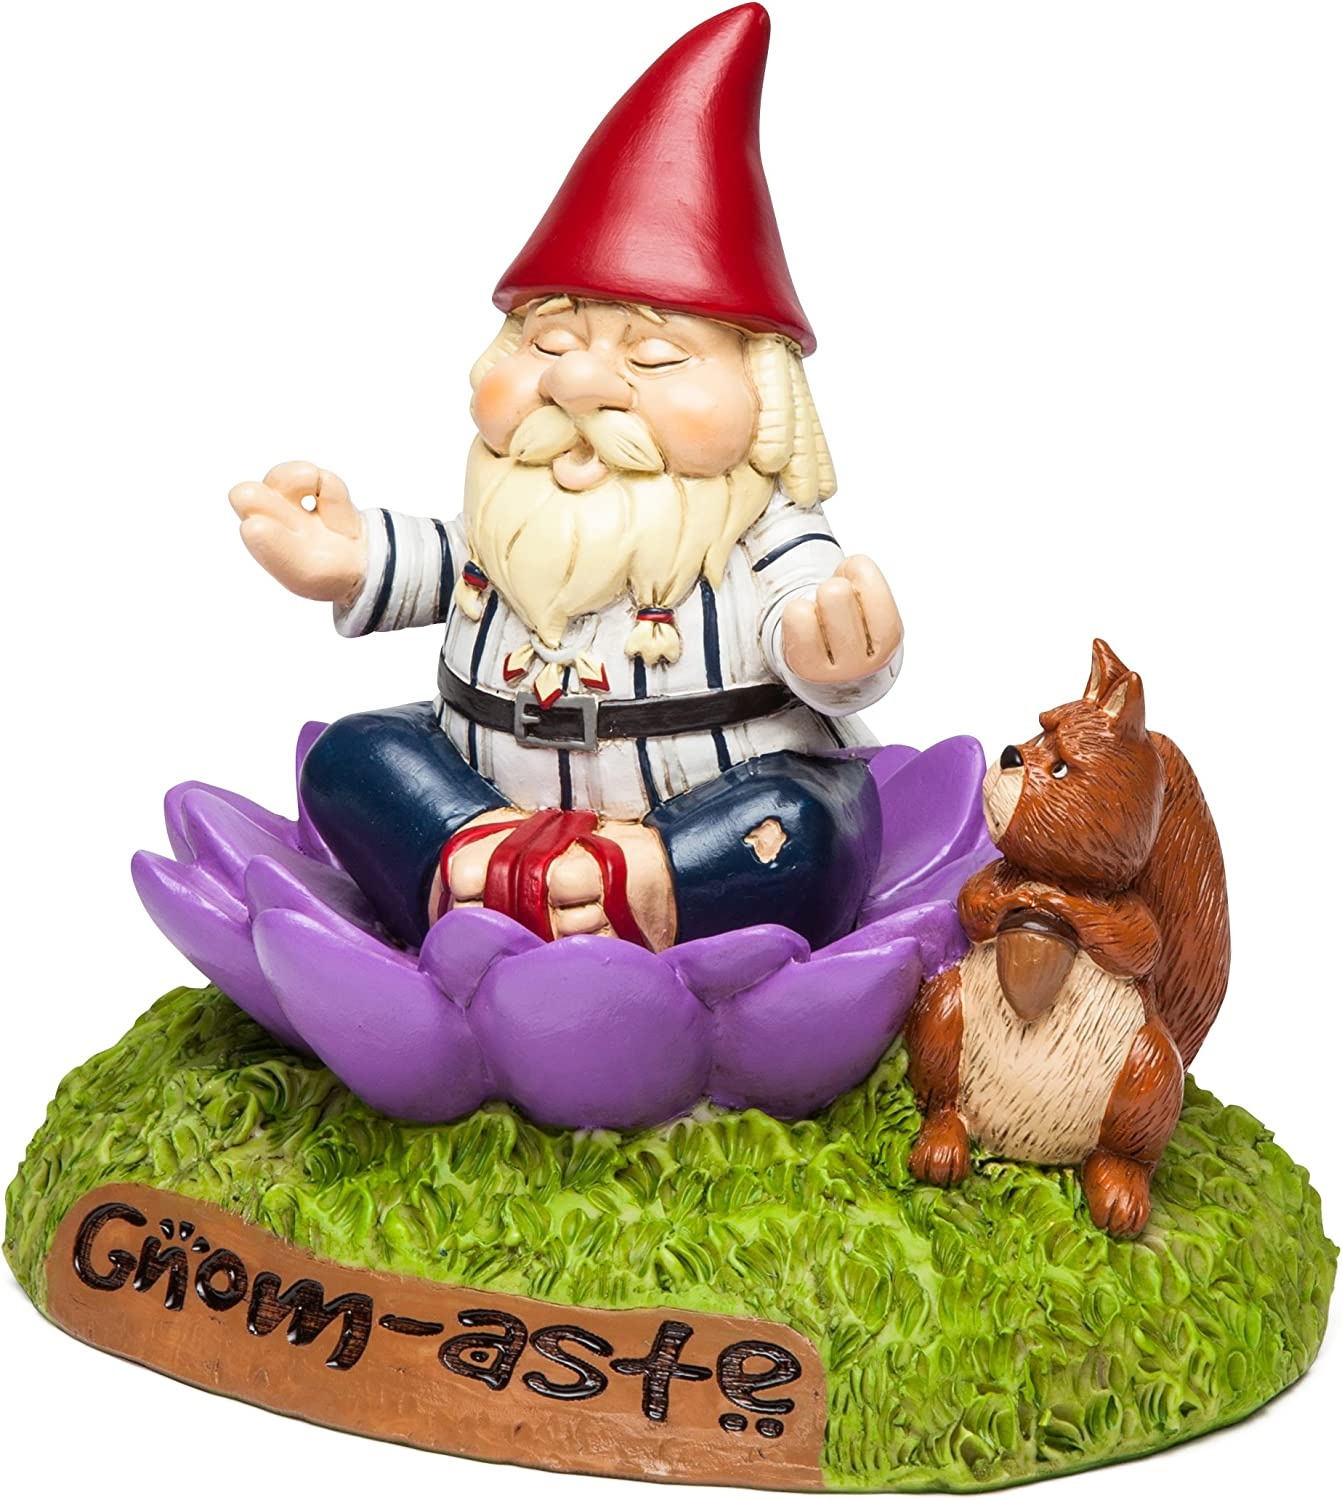 """BigMouth Inc. The Gnome-Aste Meditating Garden Gnome - Funny Weatherproof Garden Decoration, Makes a Great Gag Gift – 7"""" Tall"""